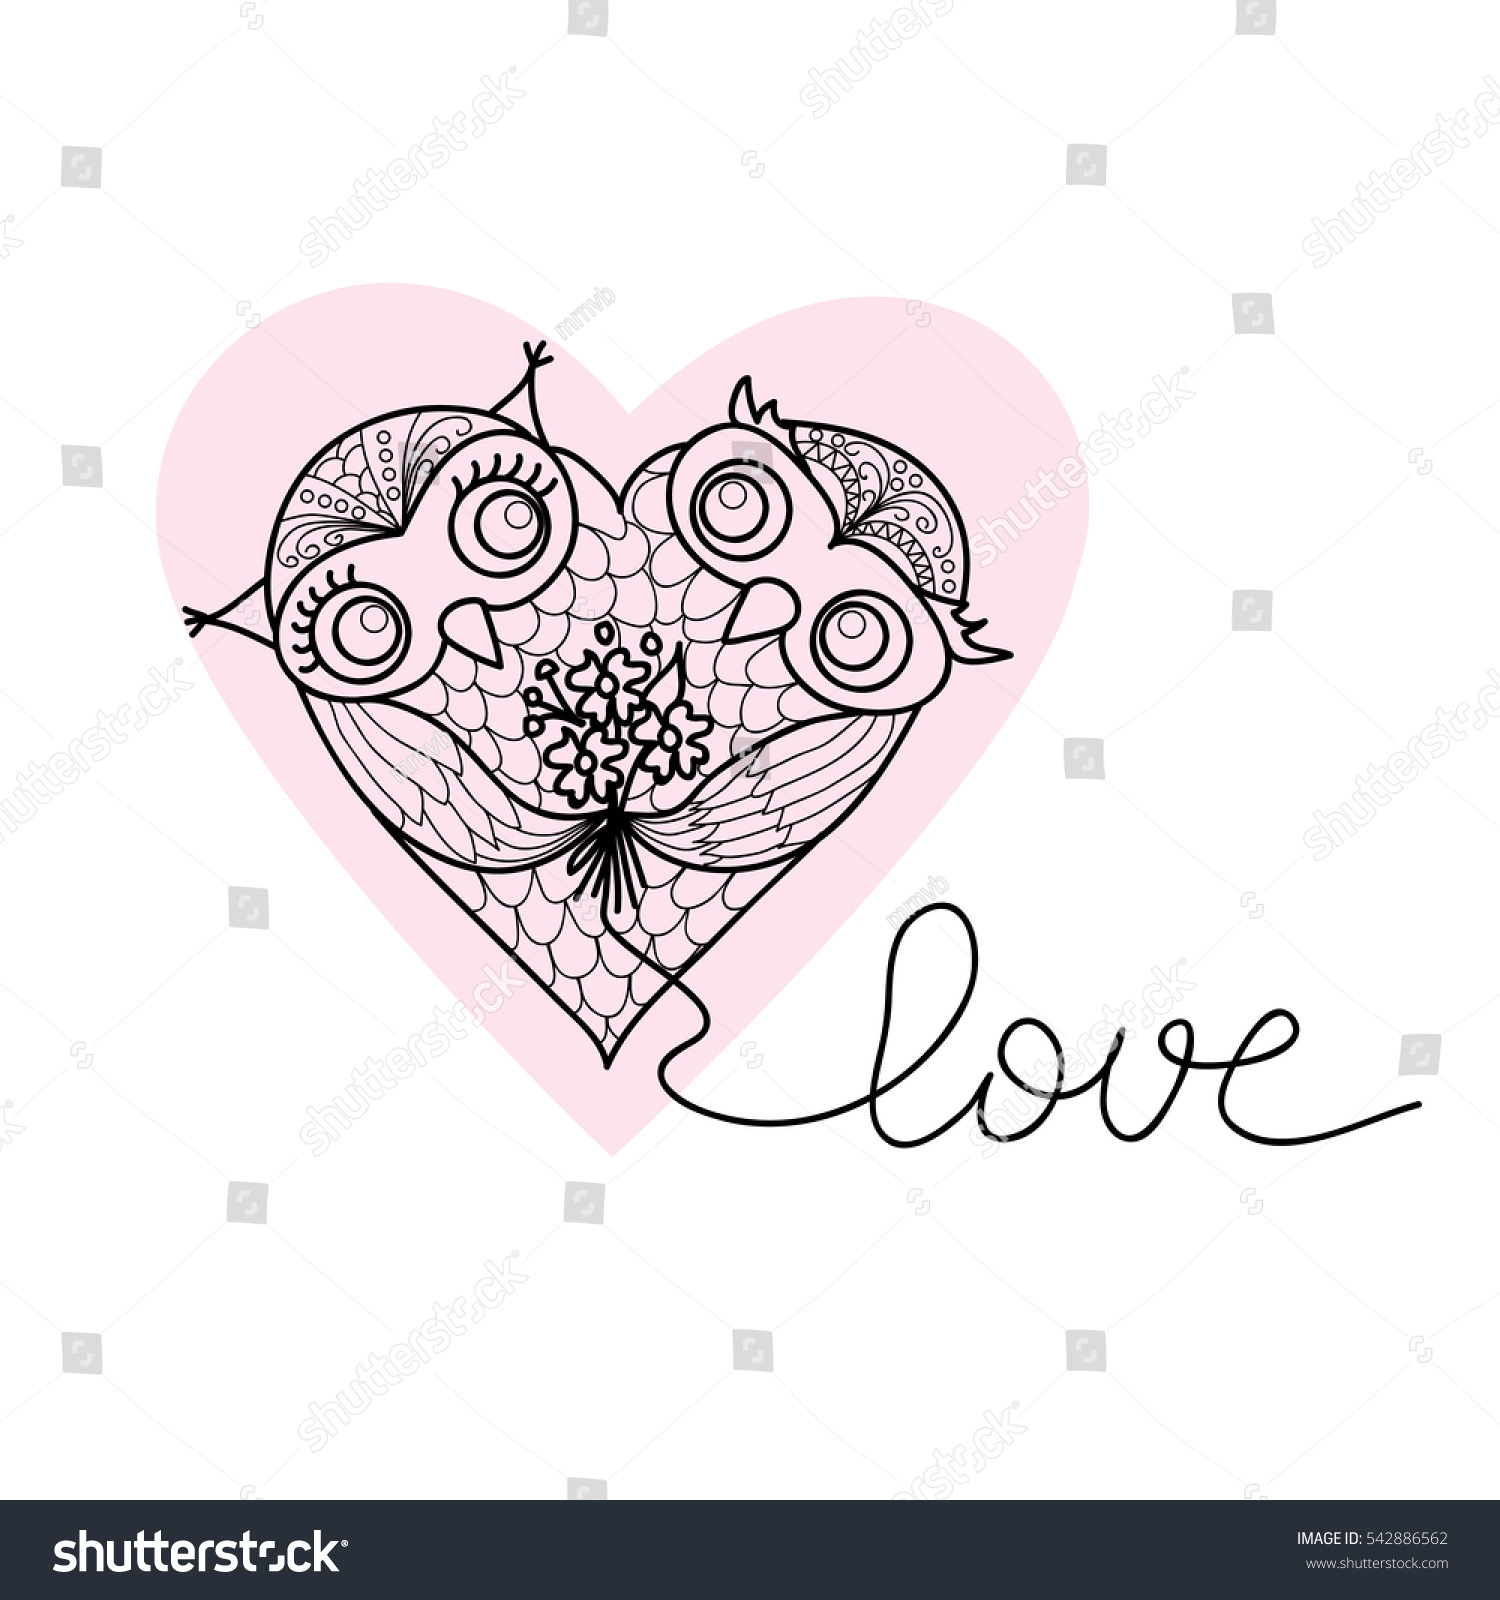 two cute owls shape heart handdrawn stock vector royalty free